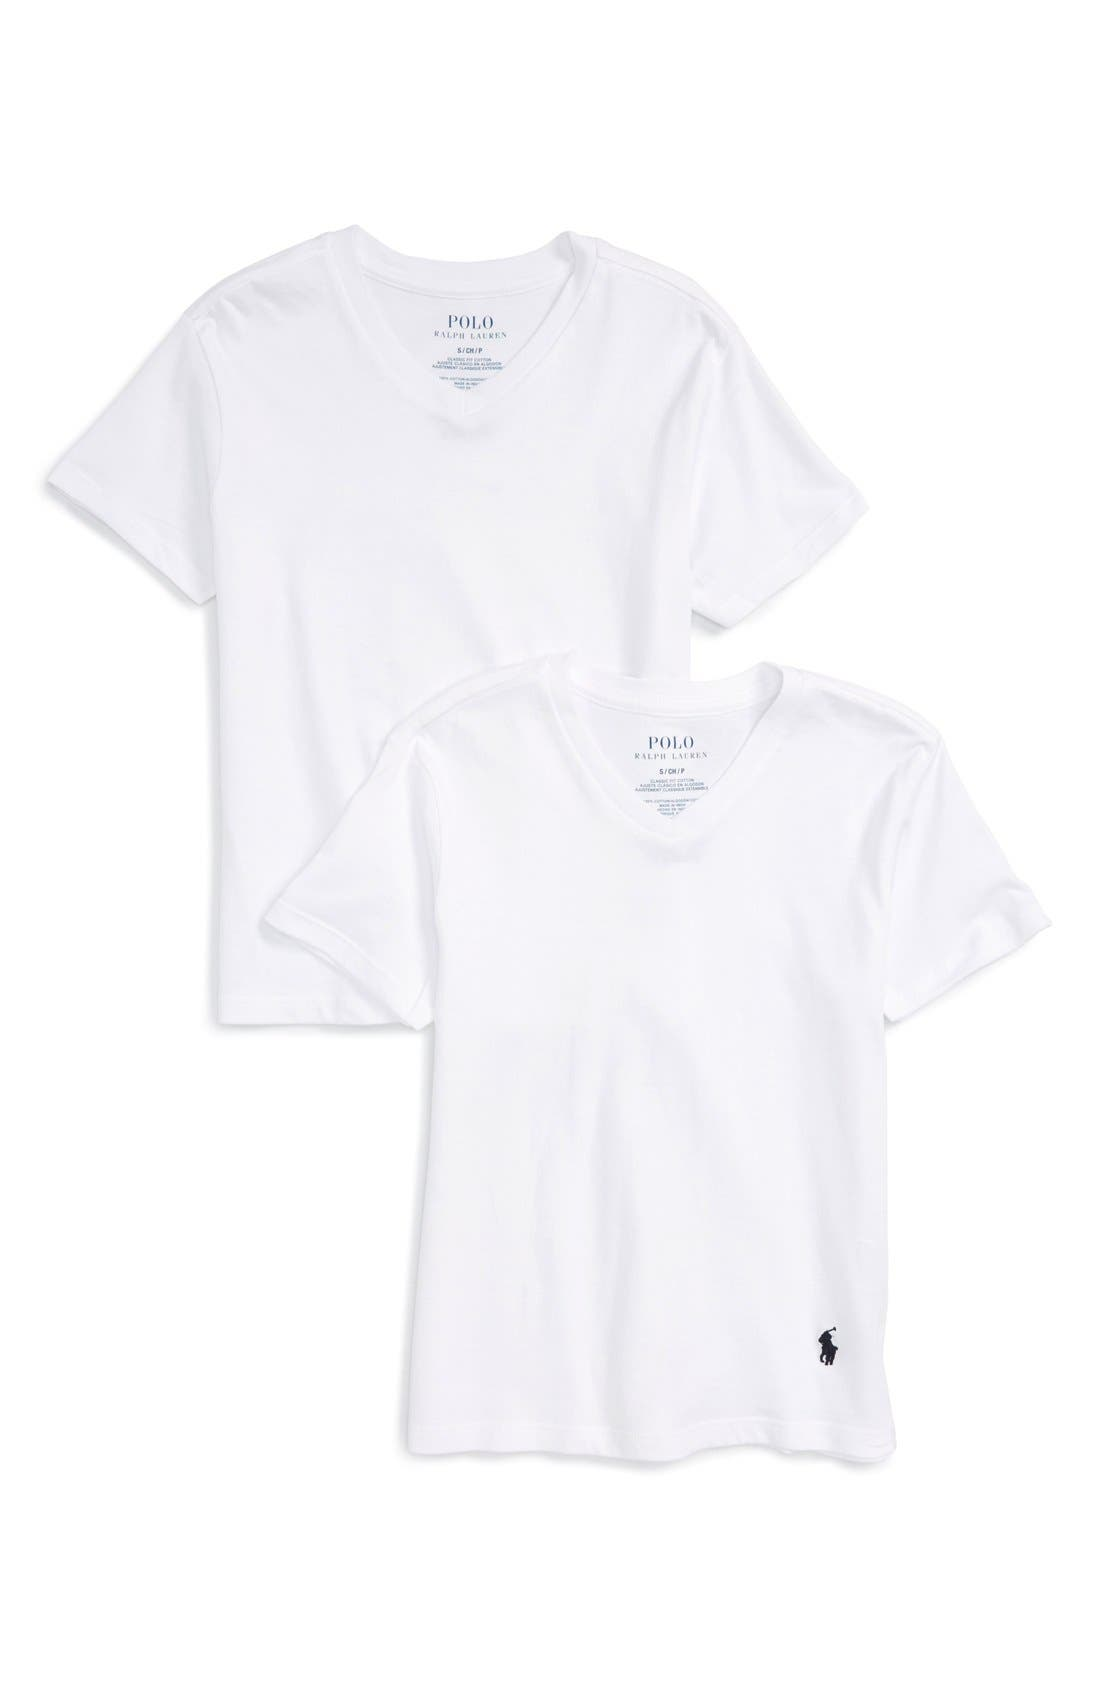 Alternate Image 1 Selected - Ralph Lauren V-Neck T-Shirts (2-Pack) (Big Boys)